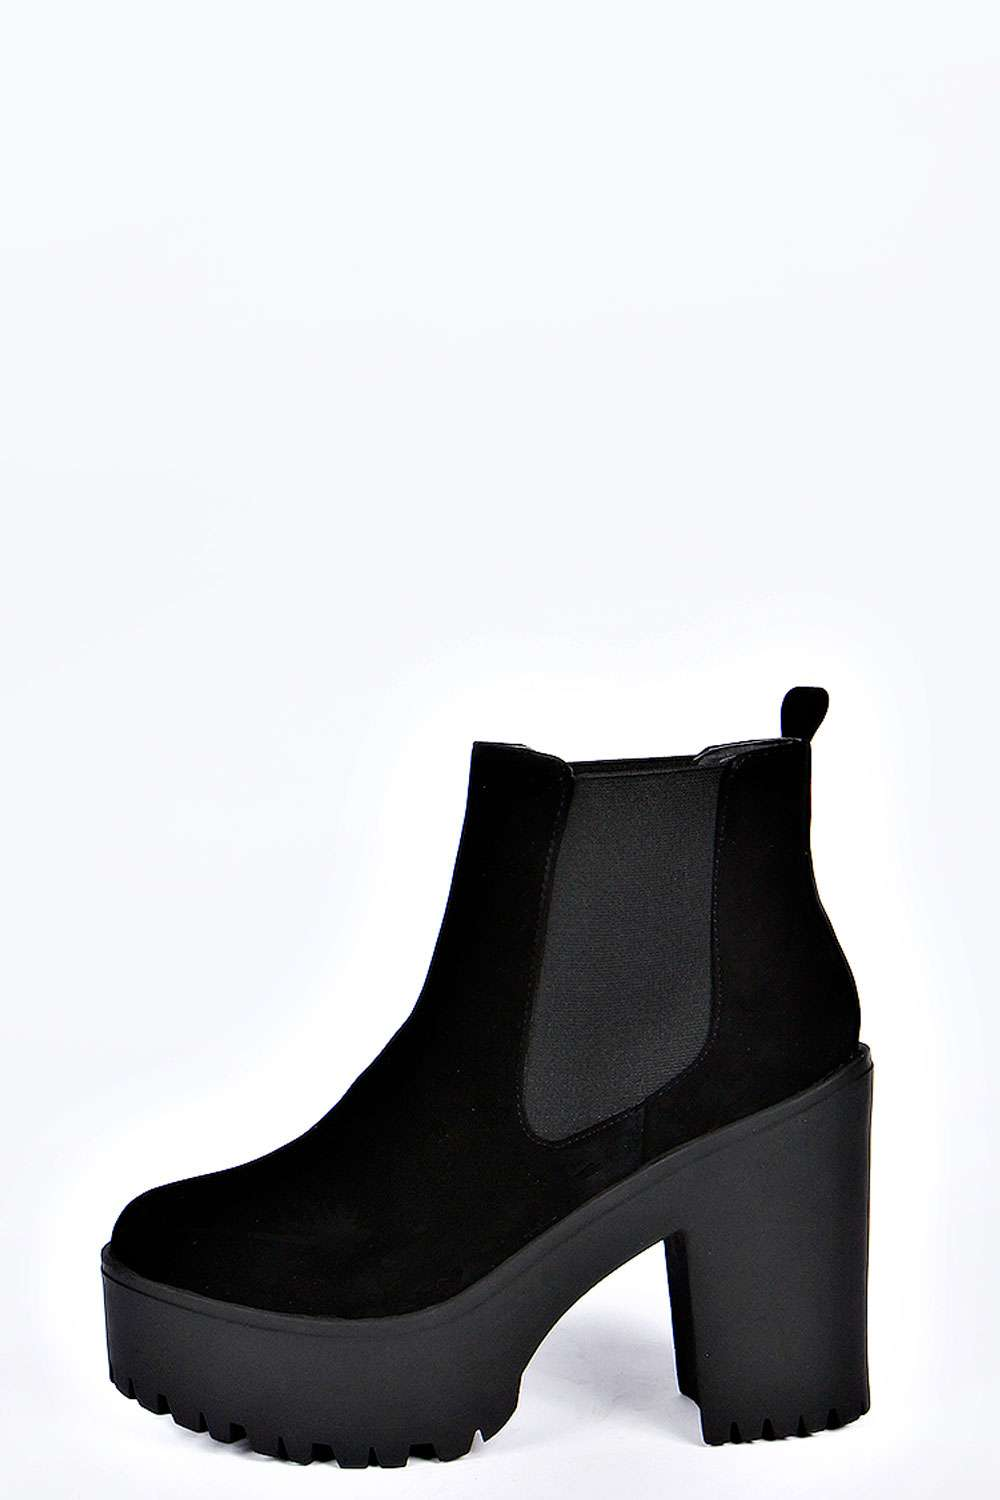 Kelly cleated deep elastic gusset pull on boot